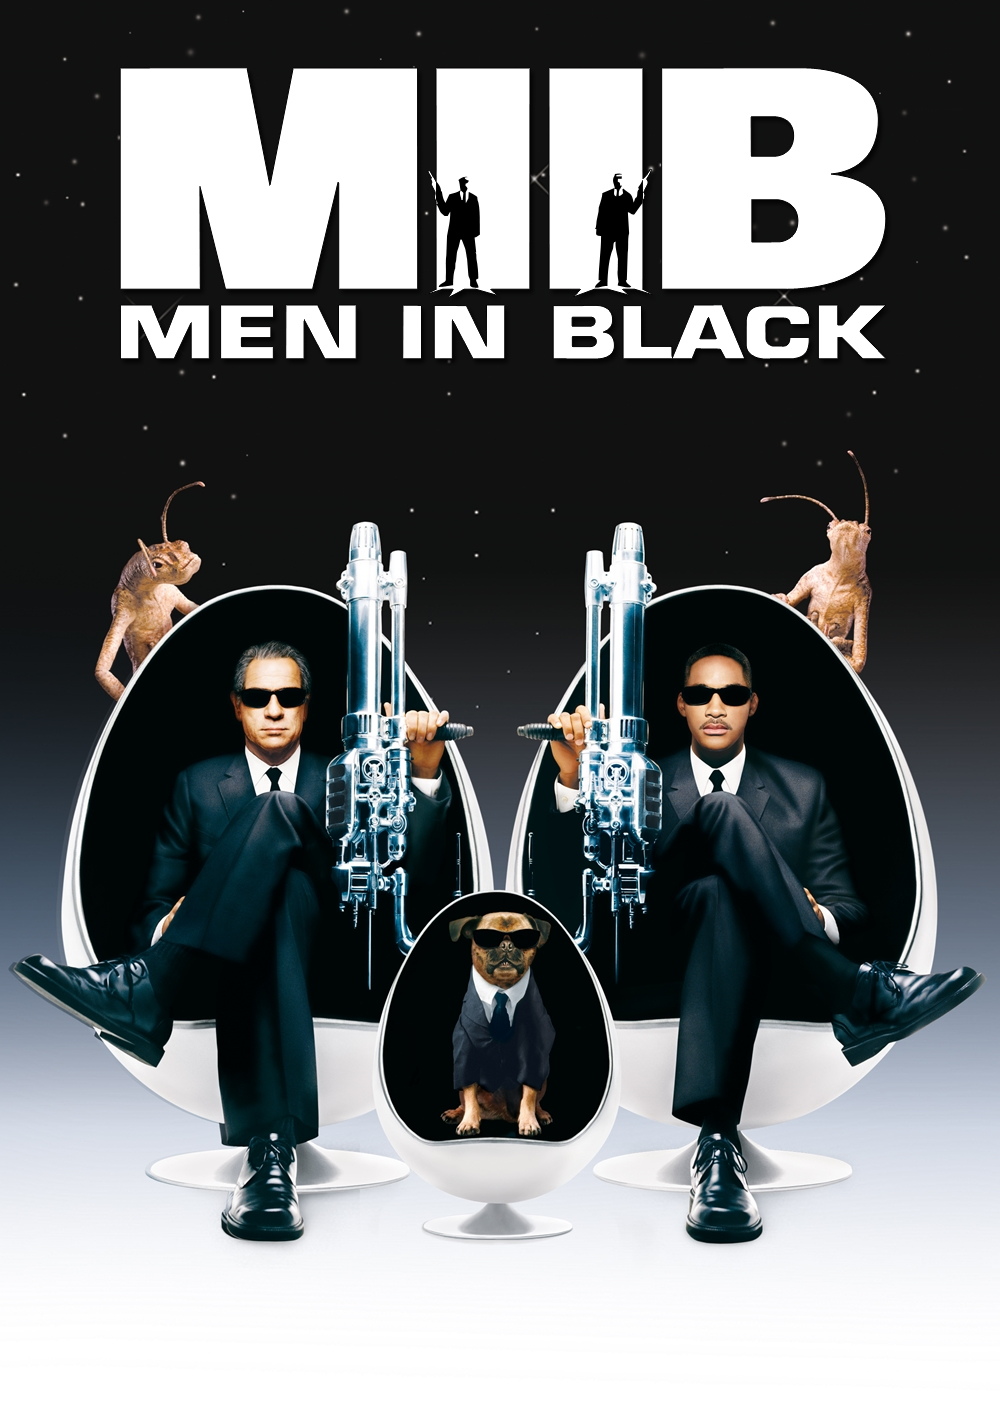 Men in Black 2 (2002) ταινιες online seires oipeirates greek subs